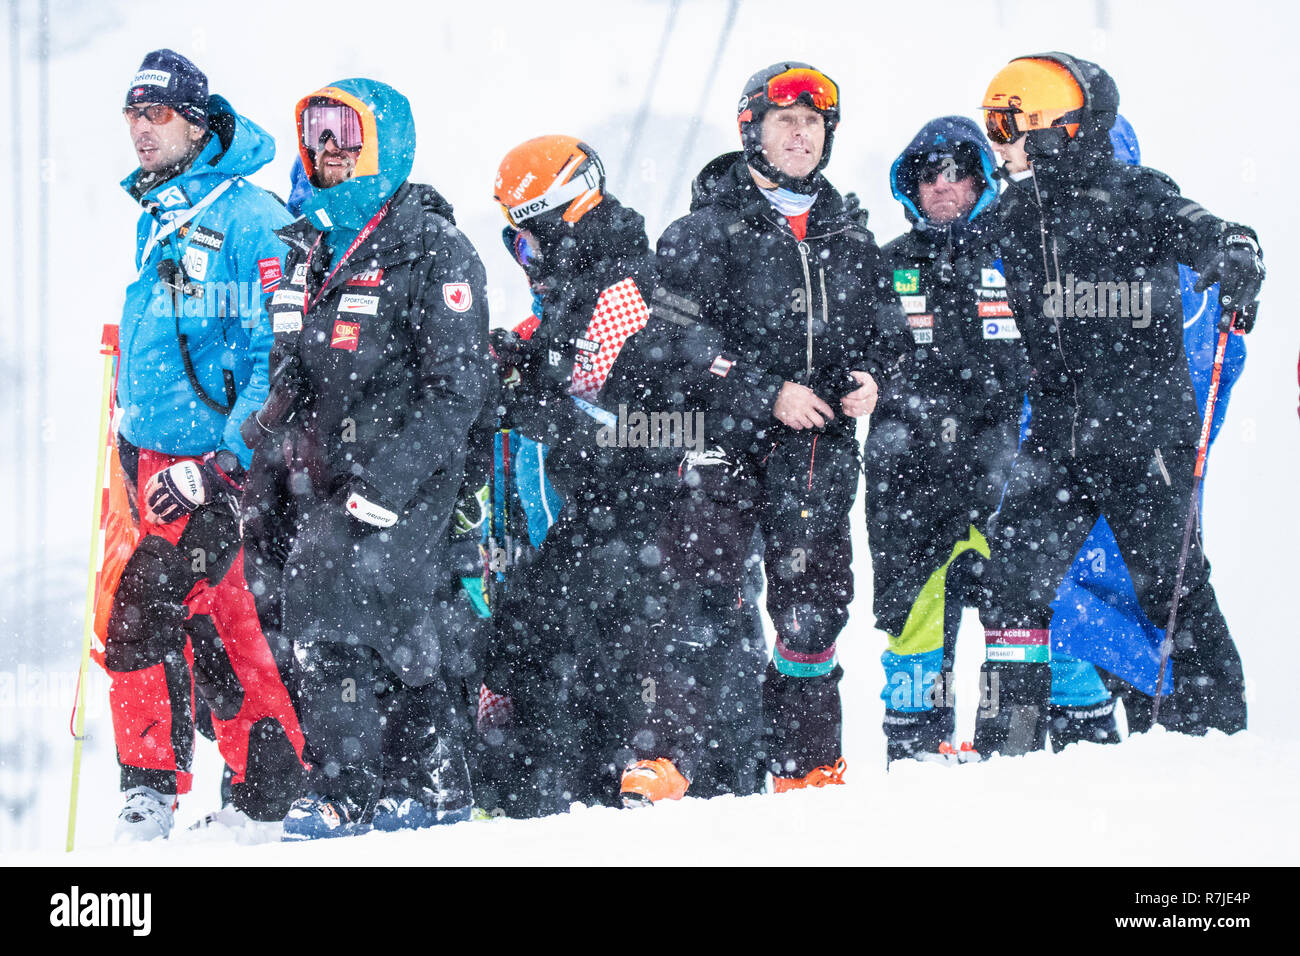 08 December 2018 Val d'Isère, France. Alpine Ski Racing Coach's Corner Audi FIS Alpine Ski World Cup 2019 Men's Giant Slalom Criterium Première Neige - Stock Image